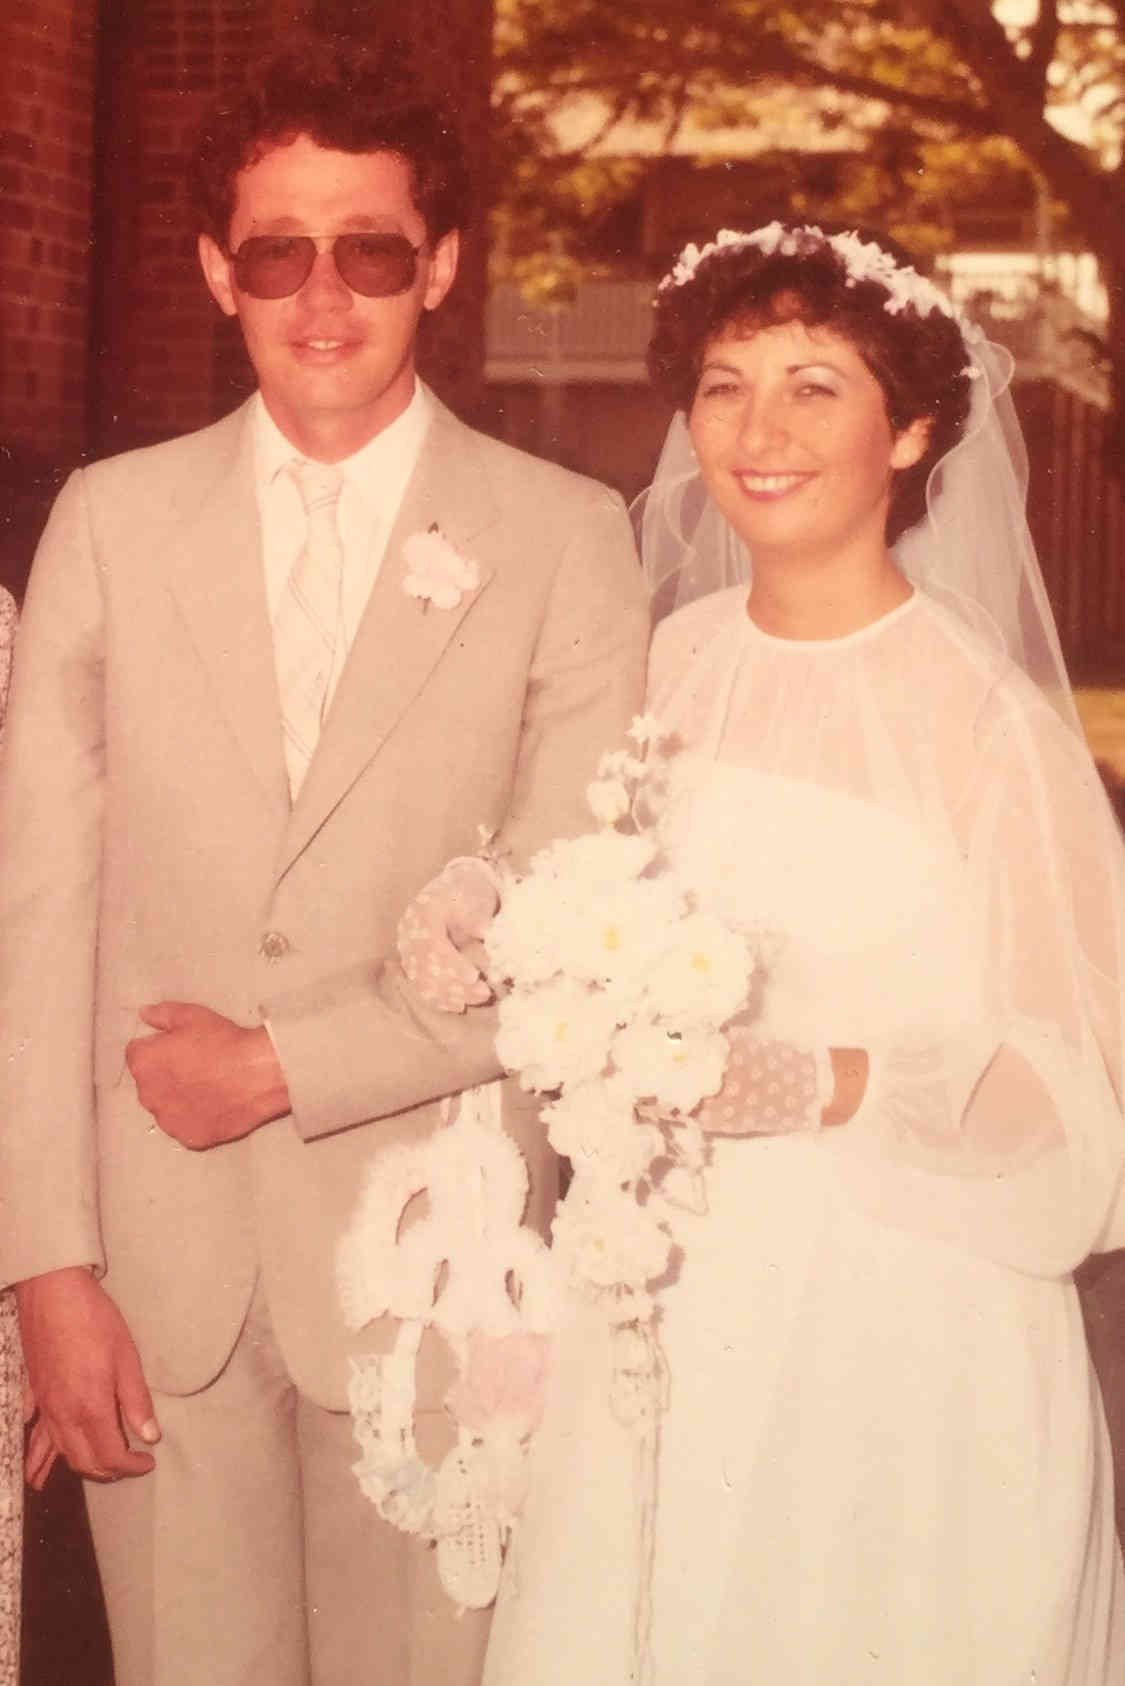 Jon and Lucy Dillon at their wedding in 1983